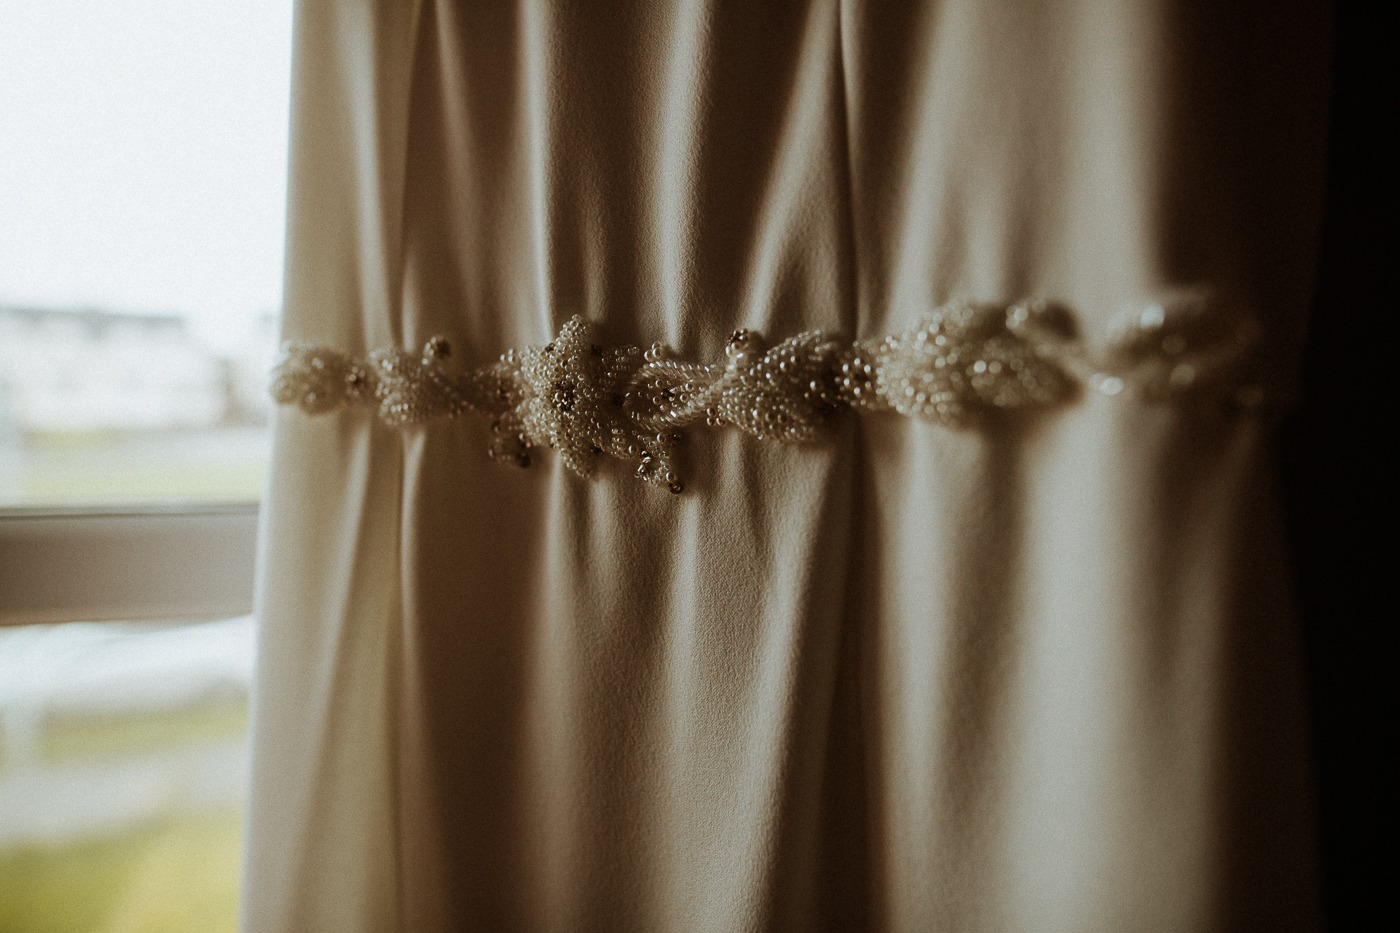 A close up of a curtain